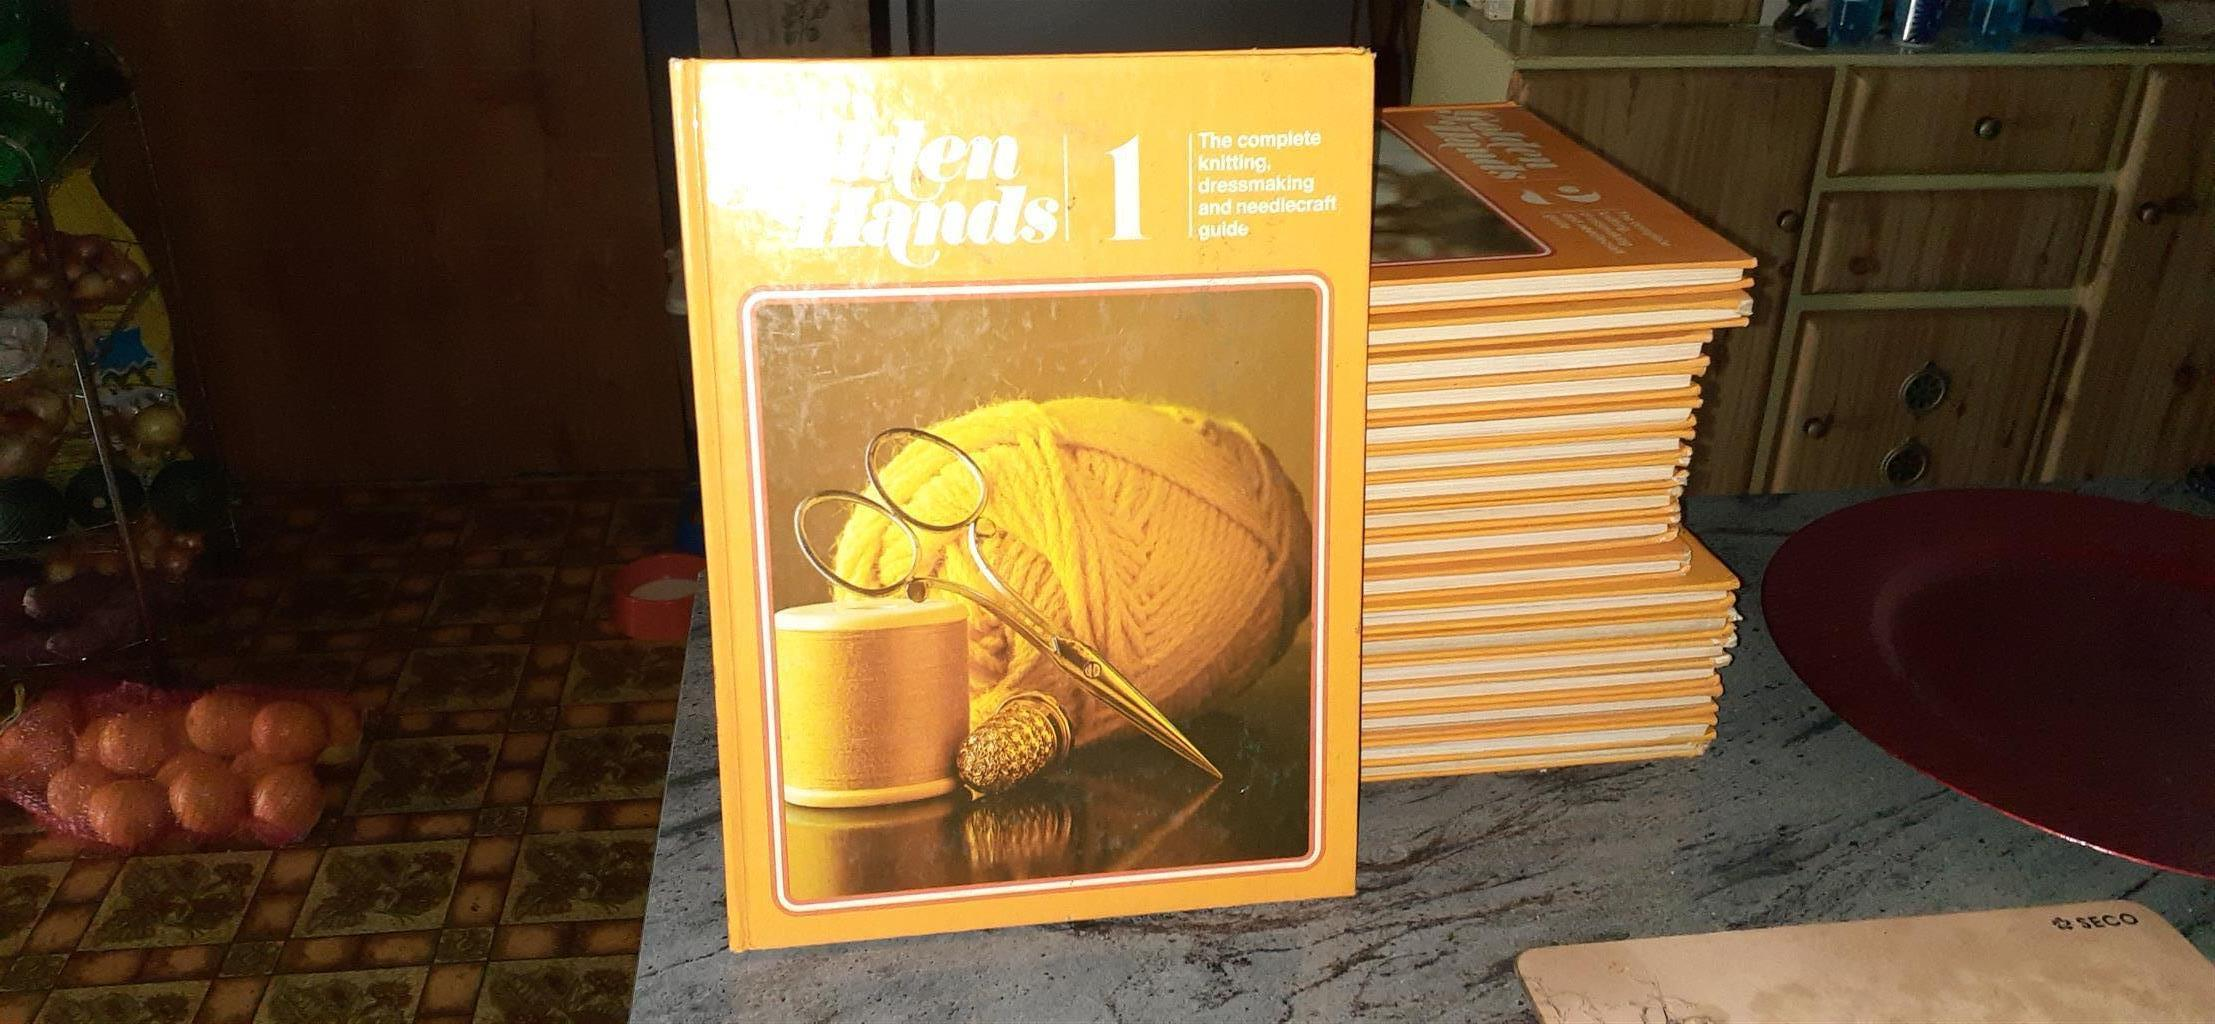 Golden Hands The complete knitting, dressmaking and needlecraft guide